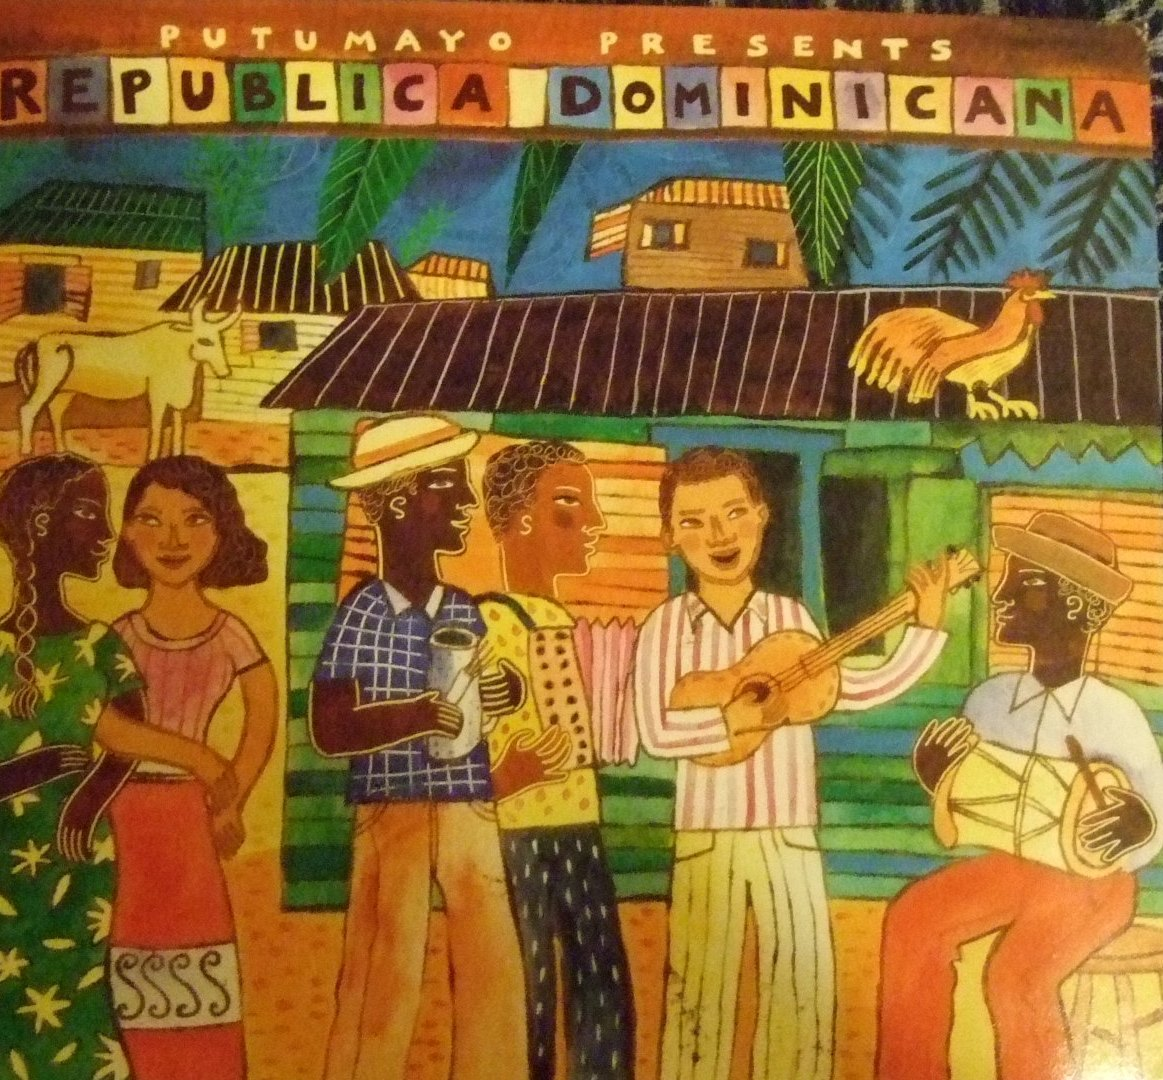 """""""Republica Dominicana"""" highlights the greatest Latin music you've never heard before: rootsy son, meringue, and bachata."""